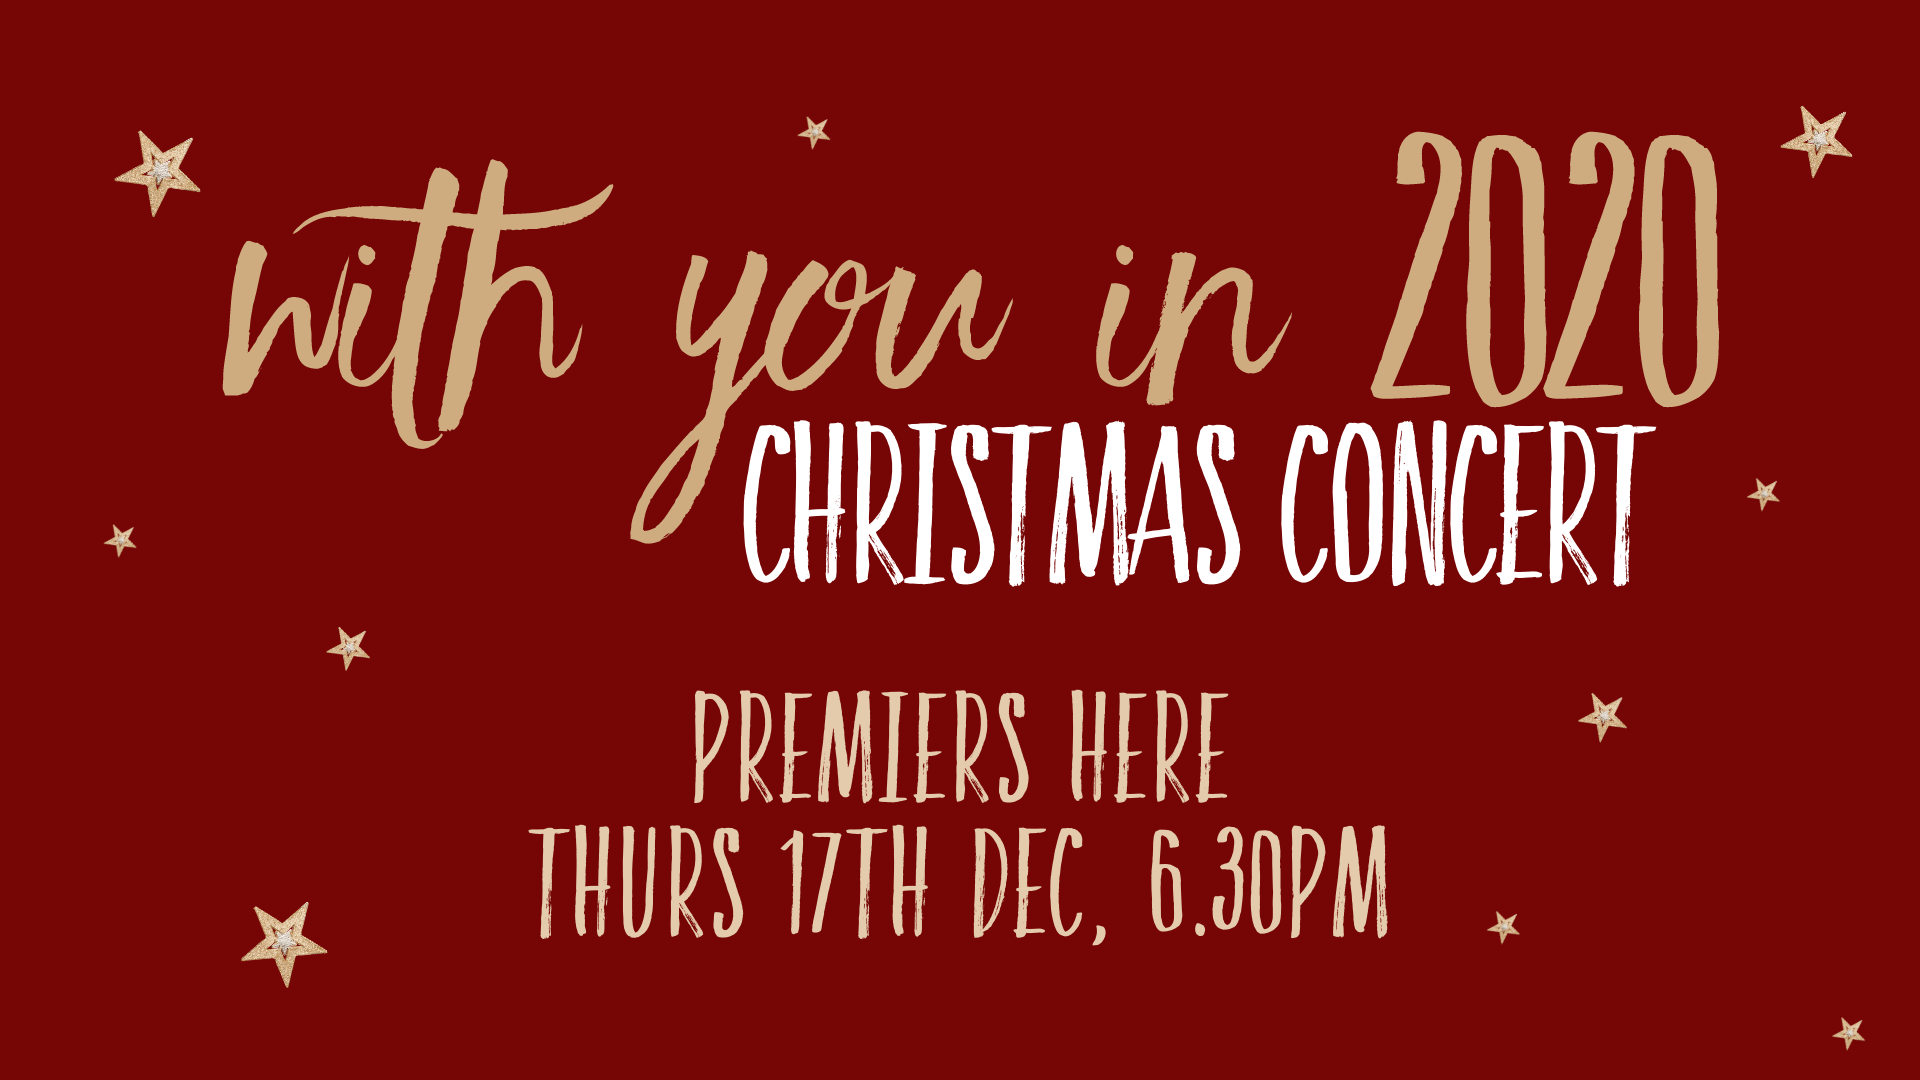 Christmas Concert poster: with you in 2020 premiers here Thurs 17th Dec, 6:30pm